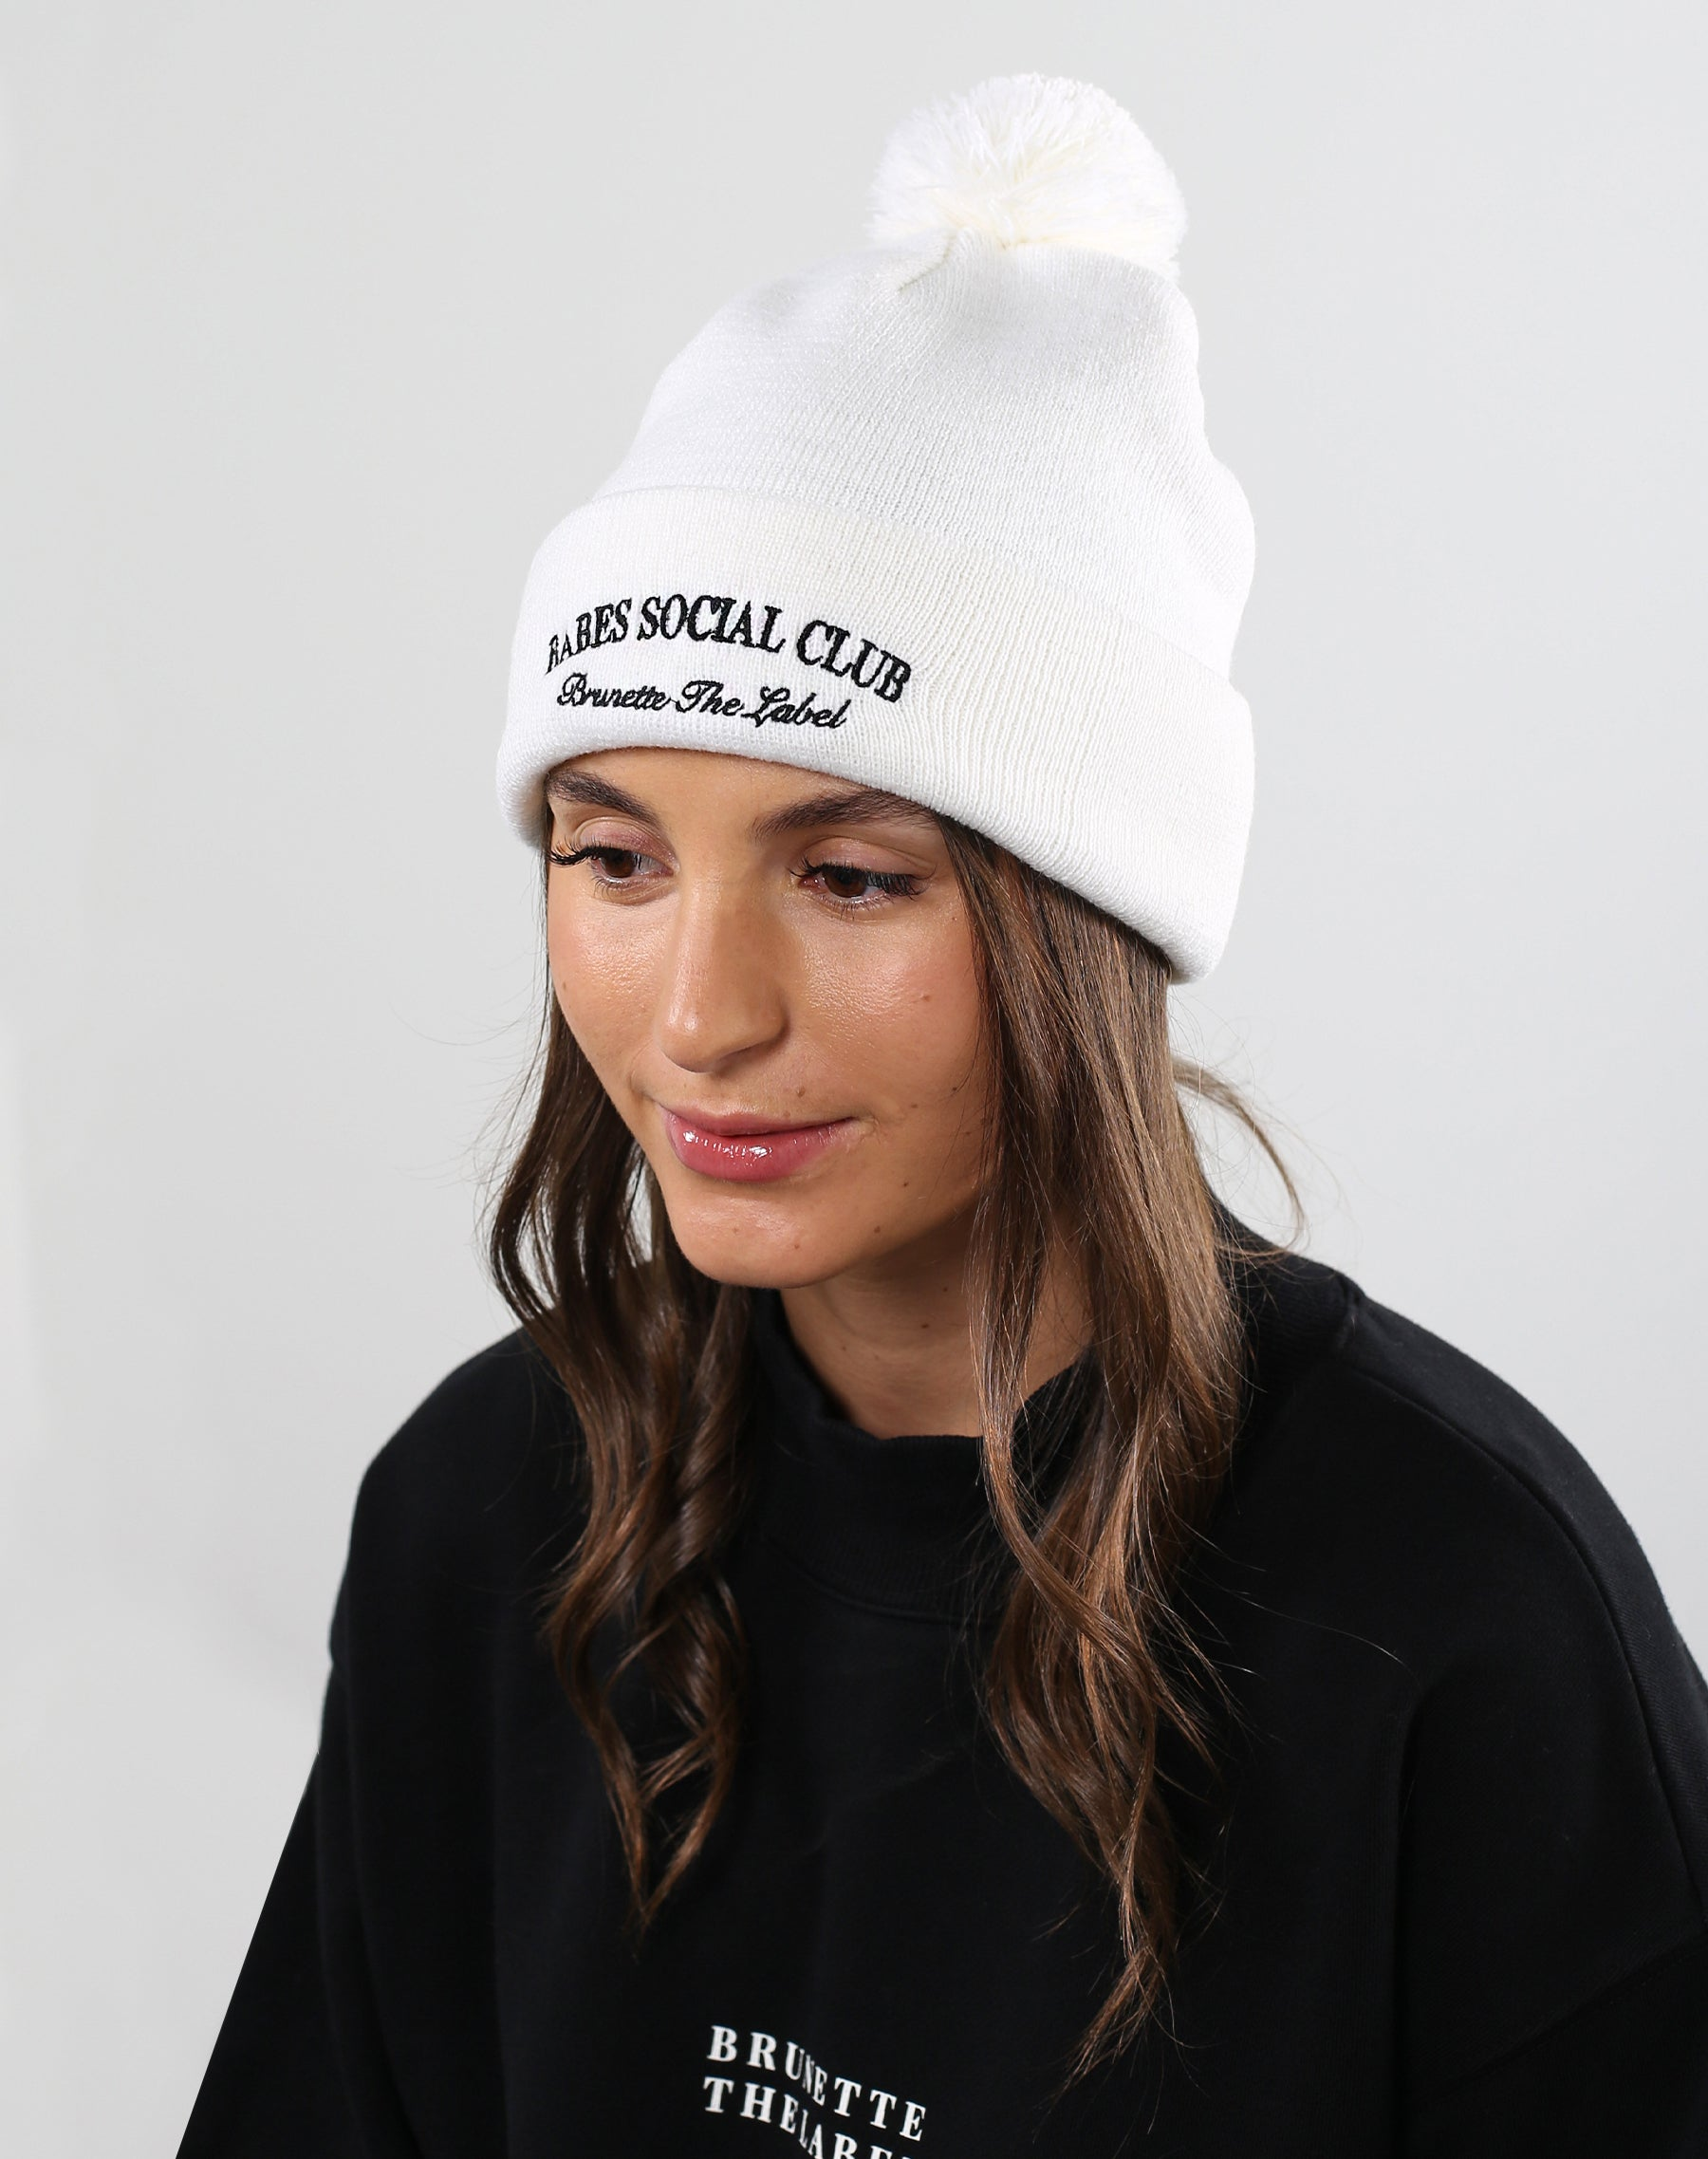 This is a photo of a model wearing the Babes Social Club Toque in Cream by Brunette the Label.